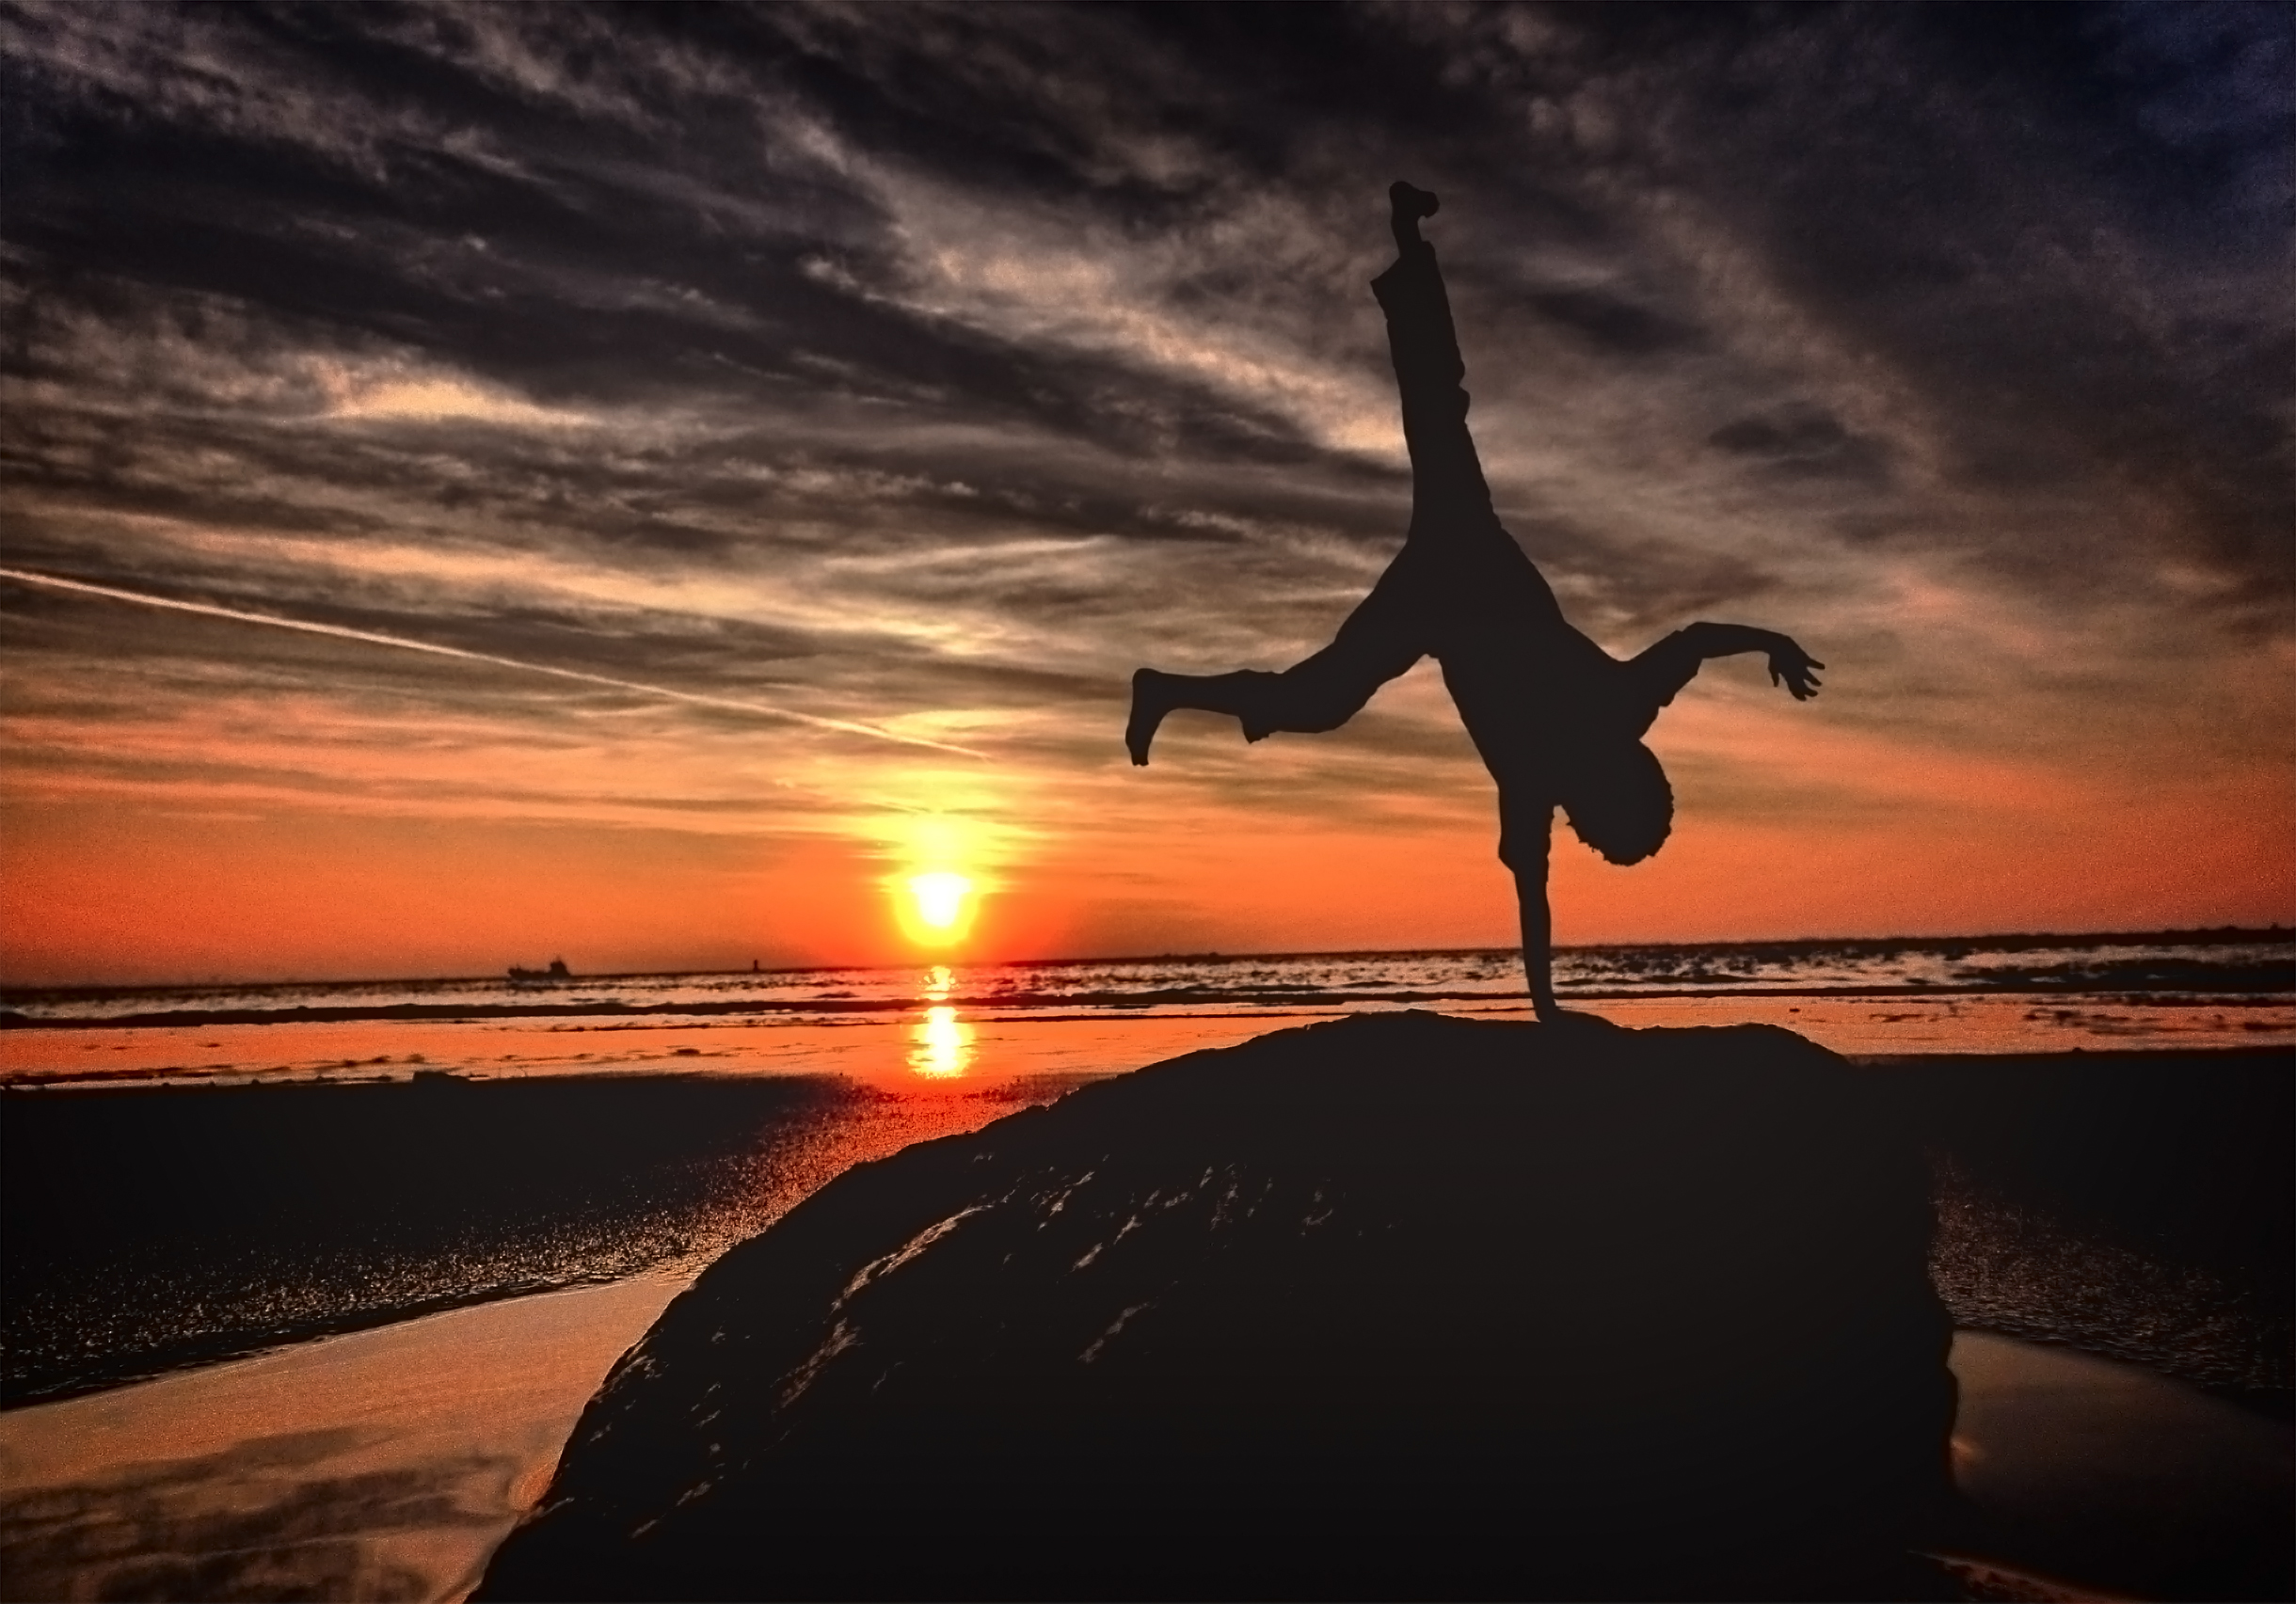 Handstanding on the beach at sunset - youth and vitality photo